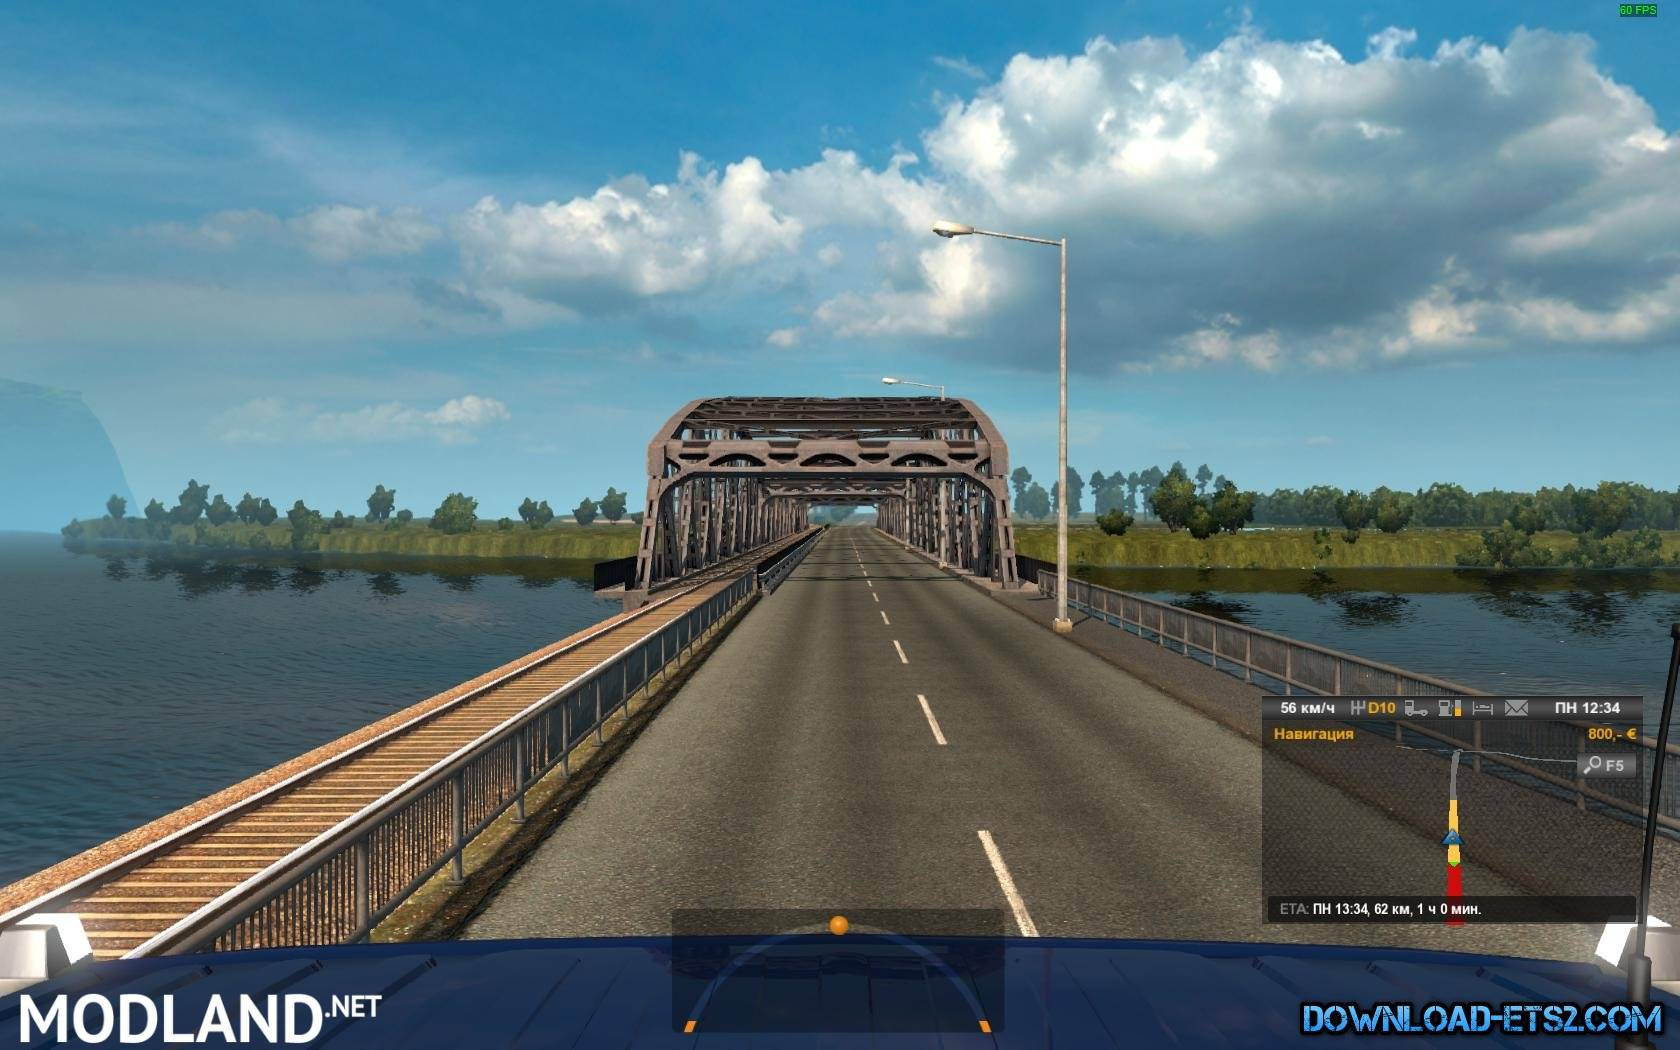 Australia Map Ets2.Australia Tasmania Map V5 2 By Ivanmykyt 1 26 X Mod For Ets 2